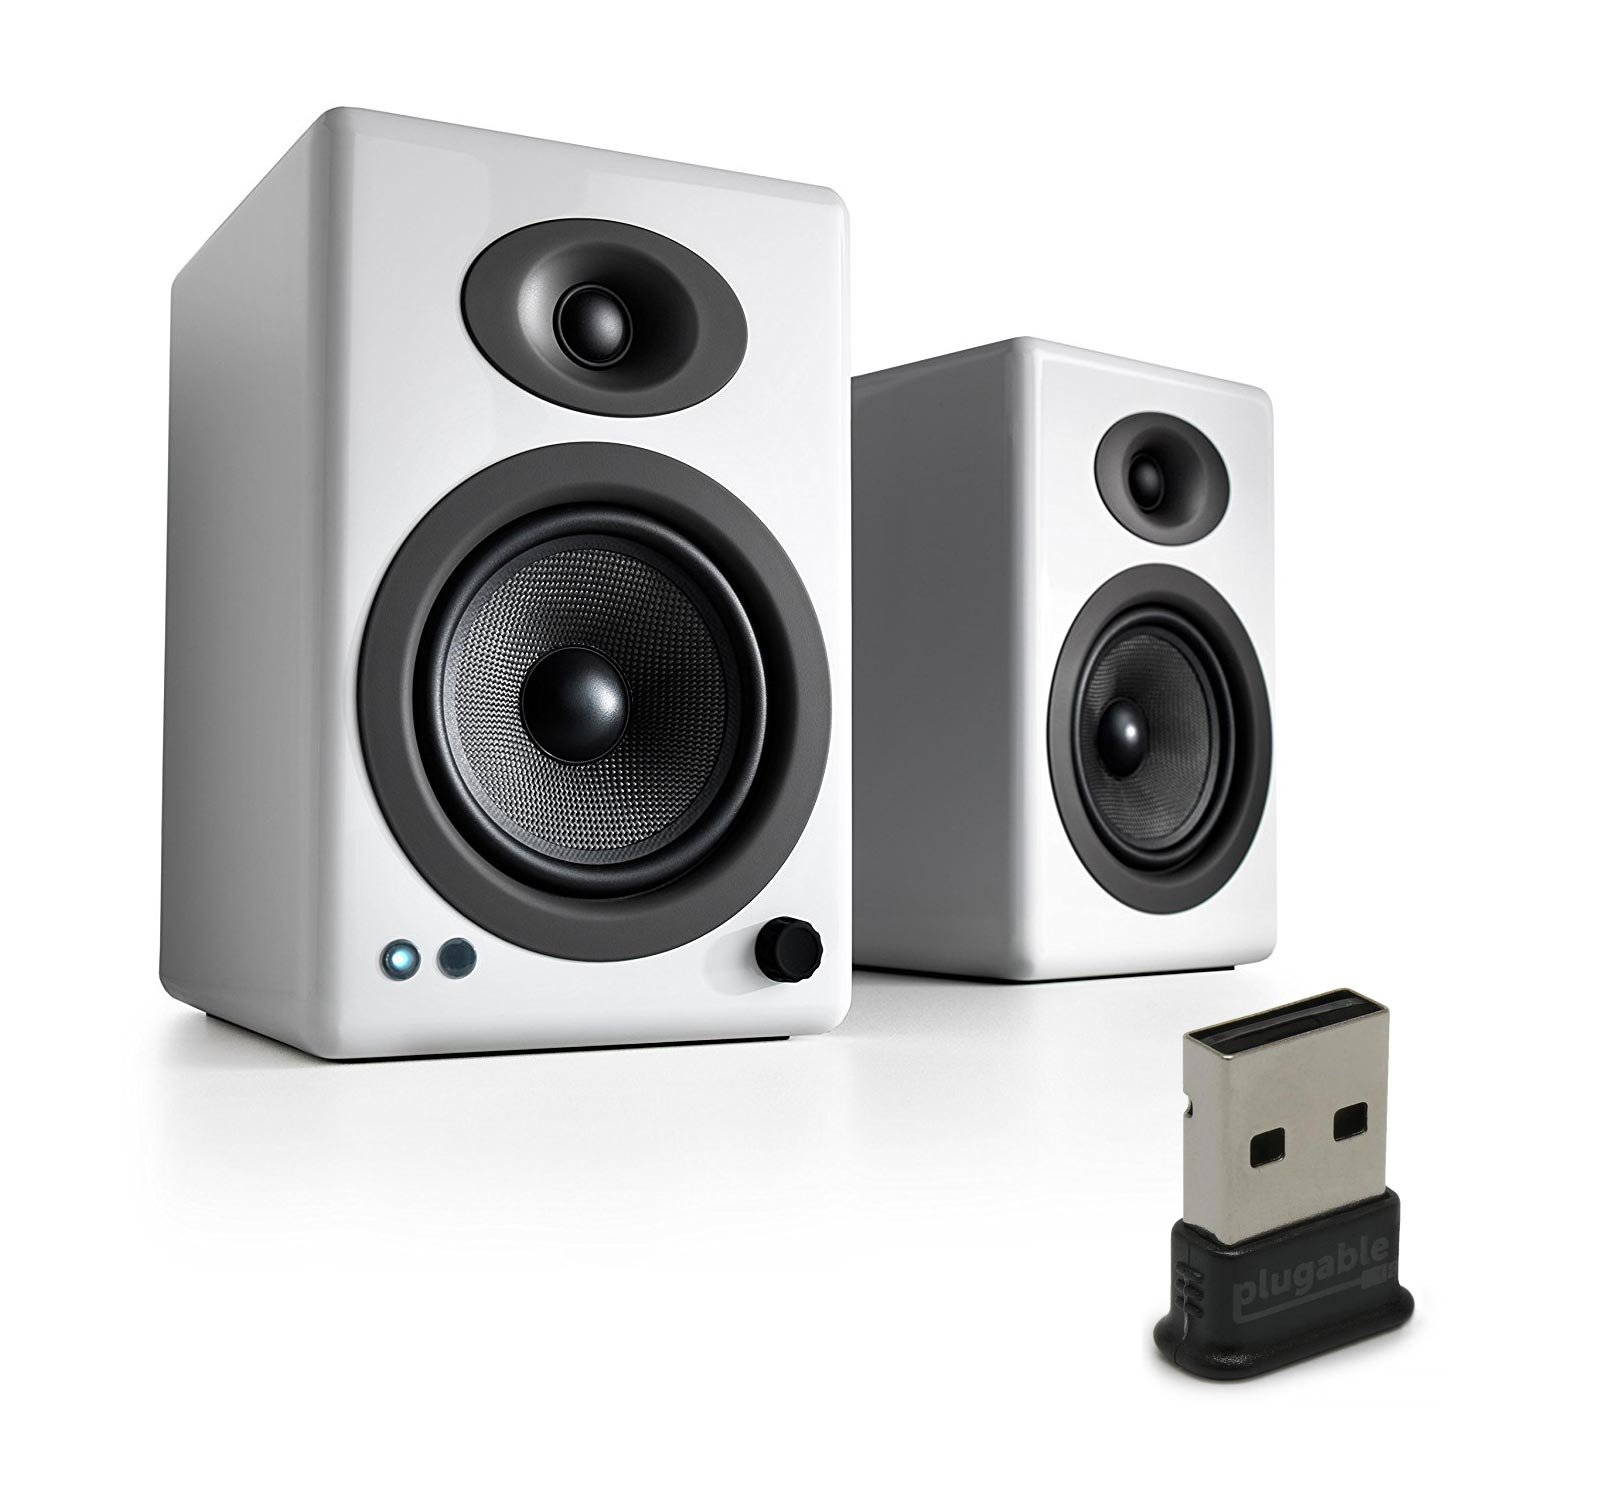 Audioengine A5+ Wireless Speakers (Pair) with Plugable USB 2.0 Bluetooth Adapter - White